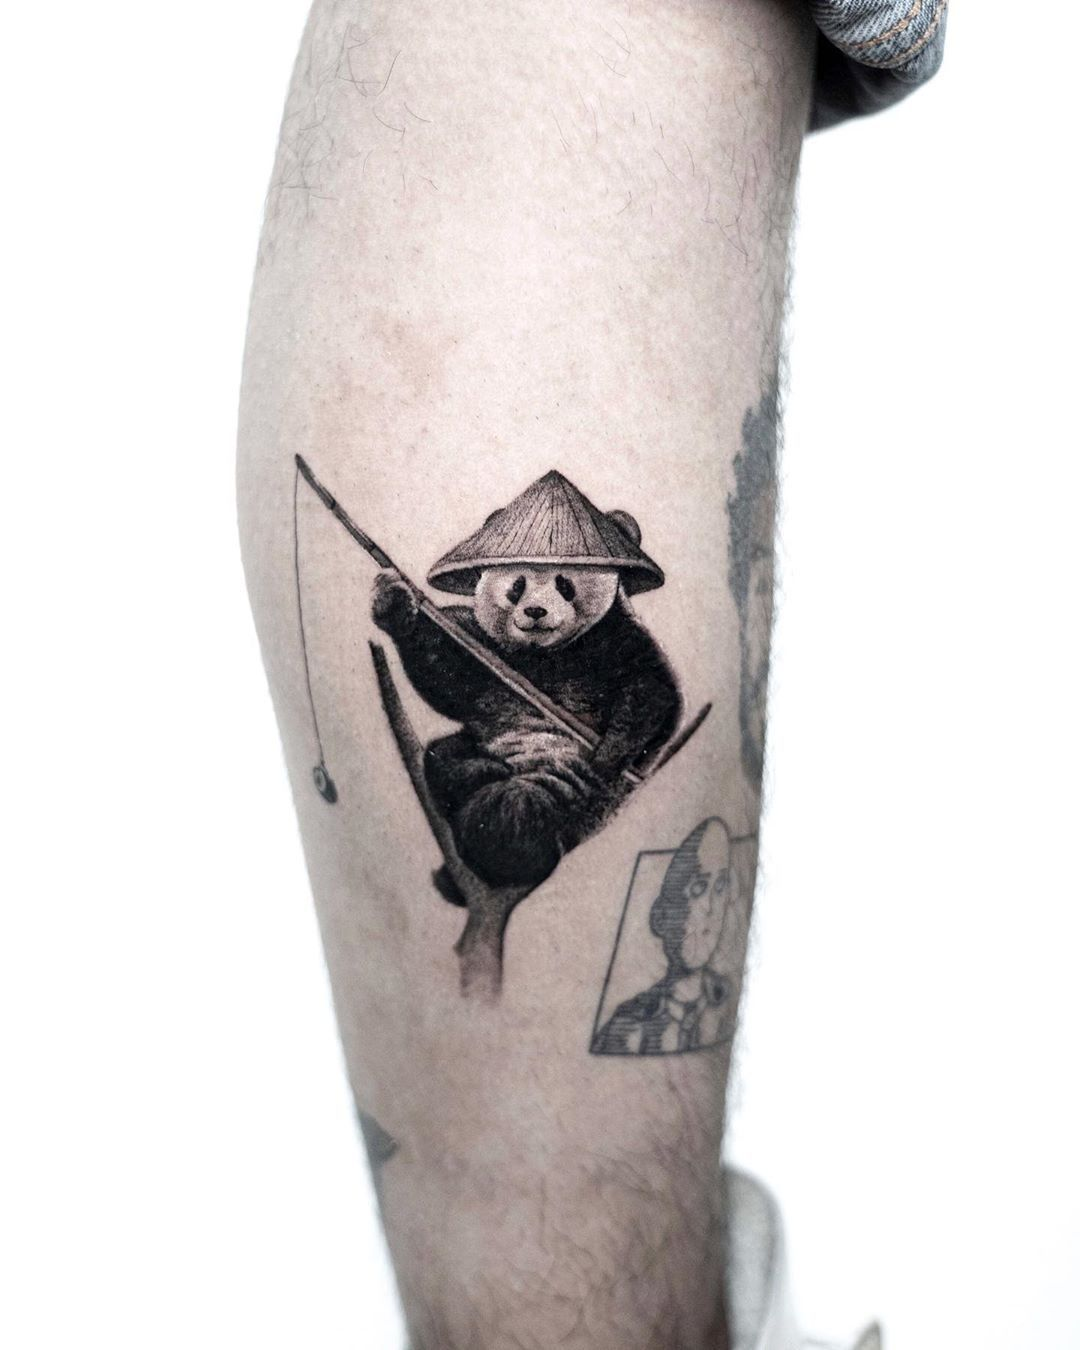 Small Tattoos for Men in 2020 Small tattoos, Tattoos for